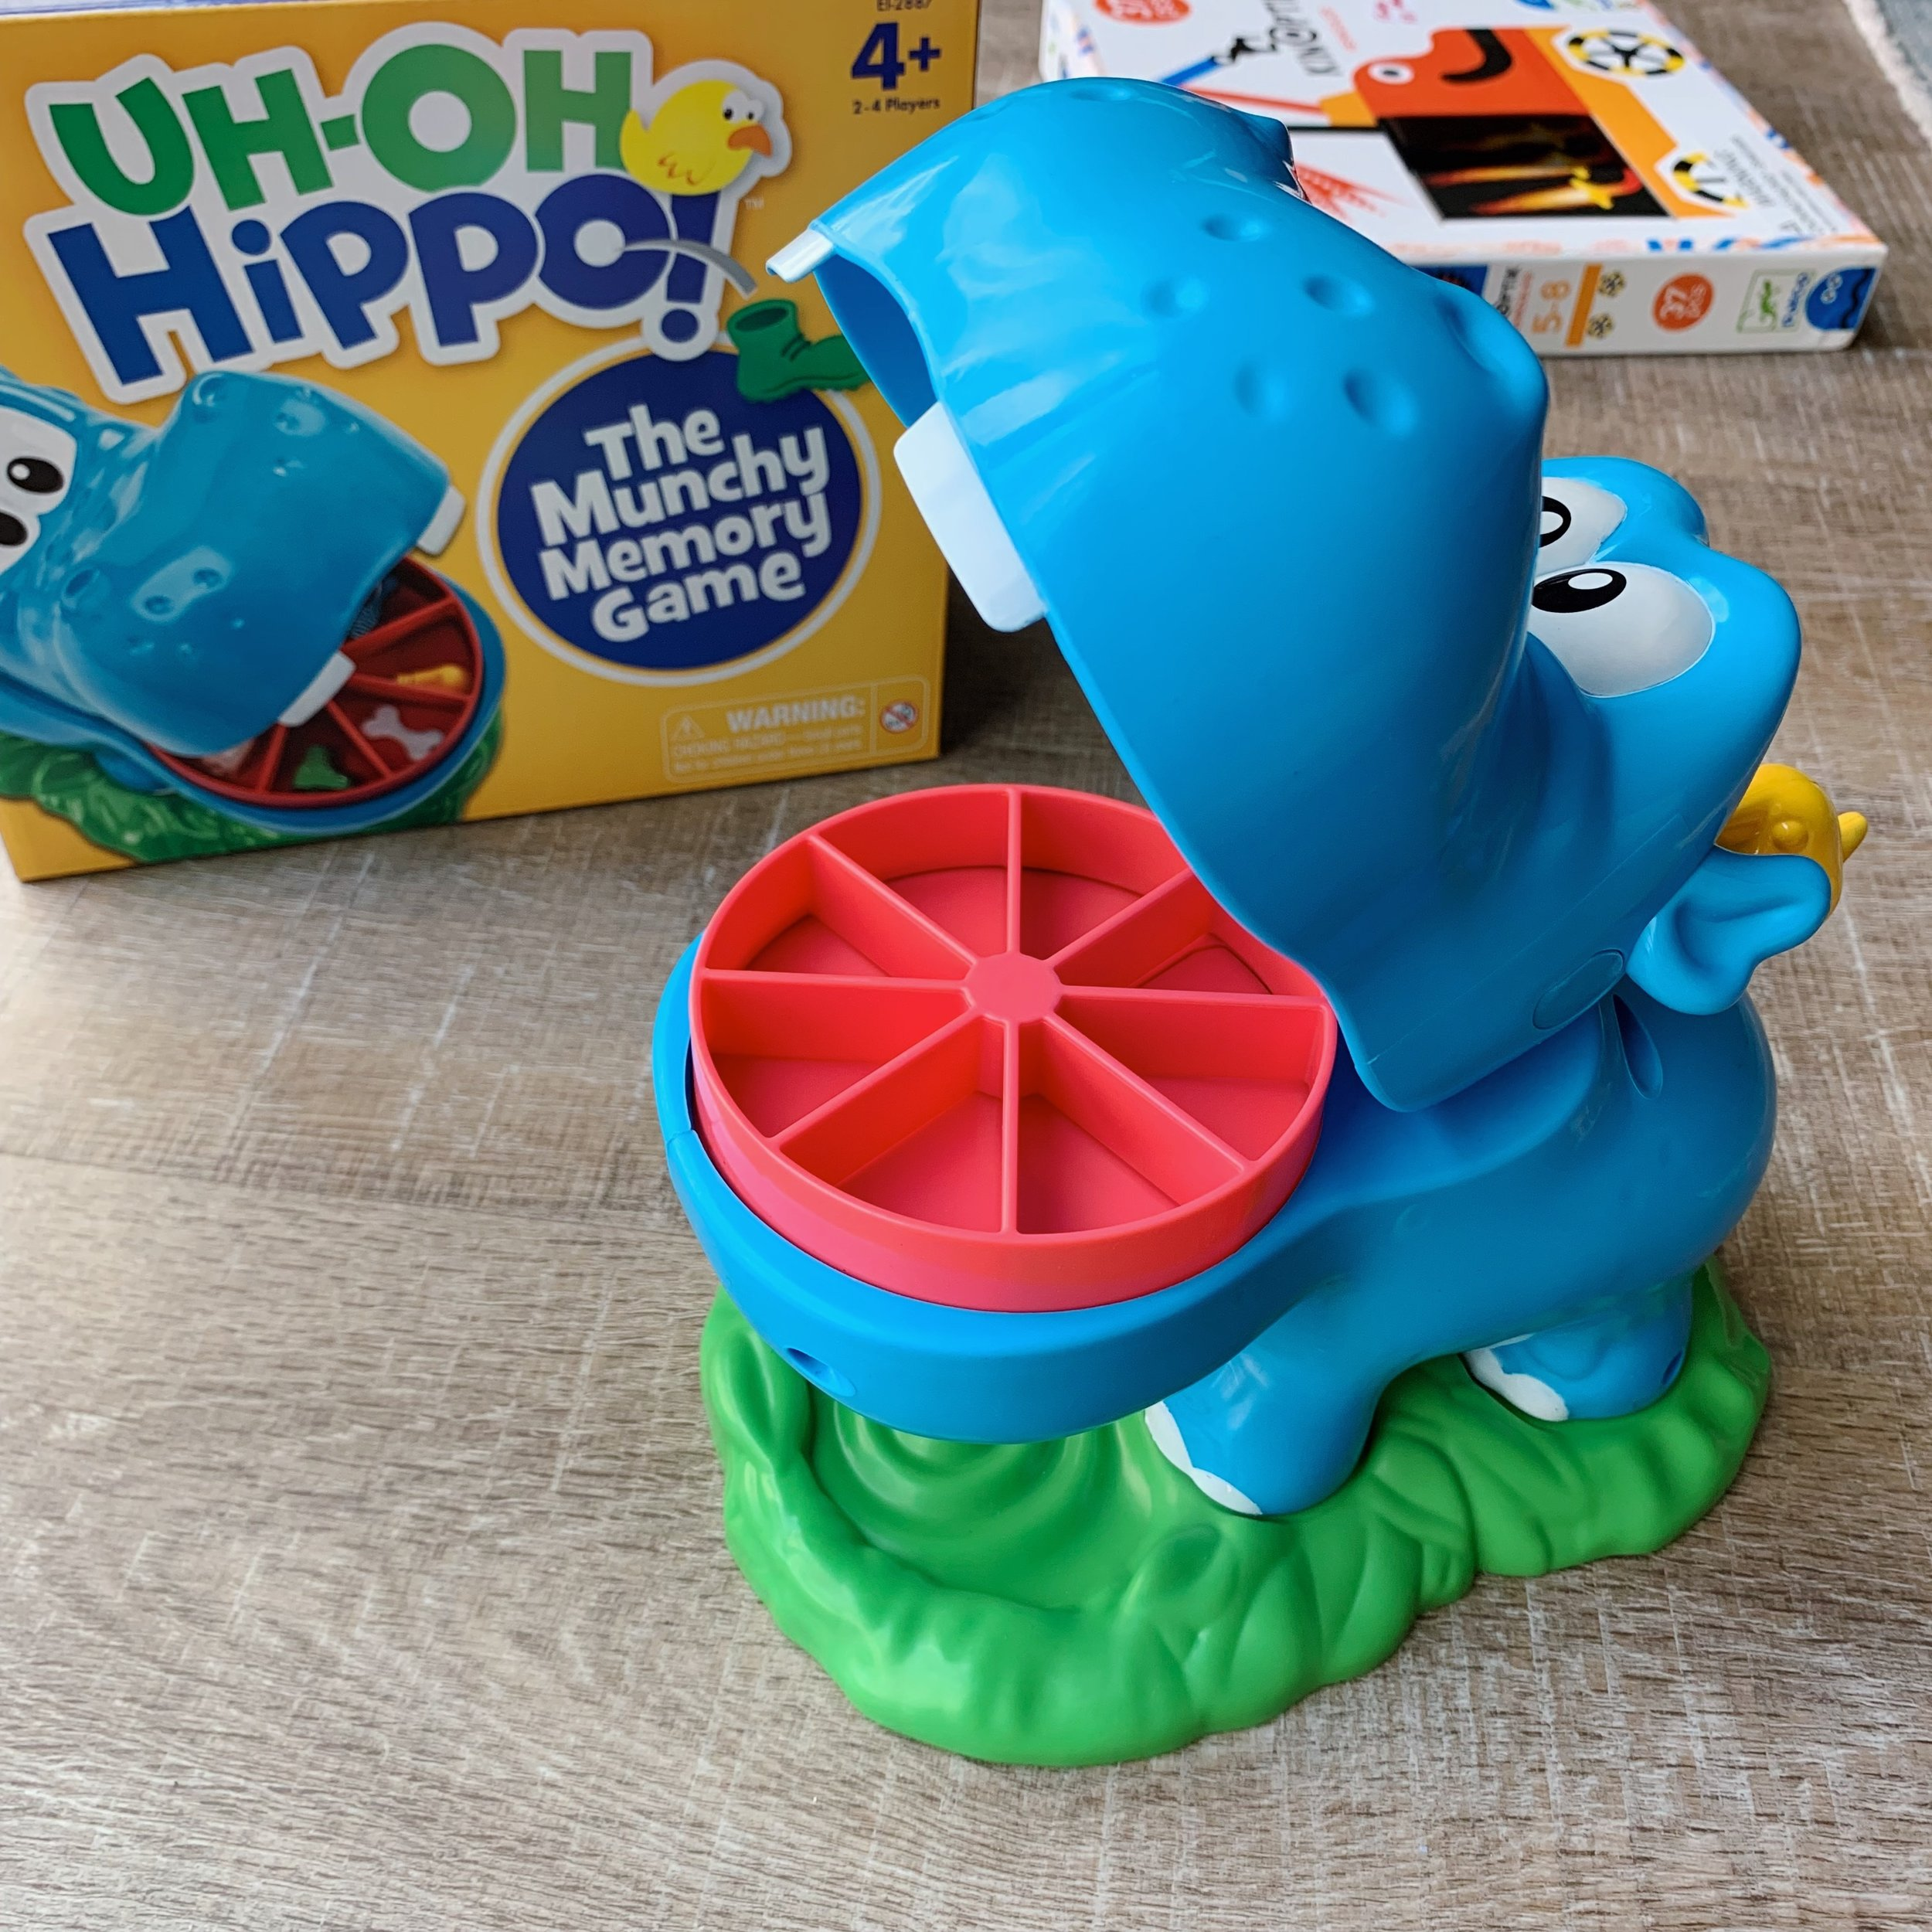 Uh-oh Hippo Game